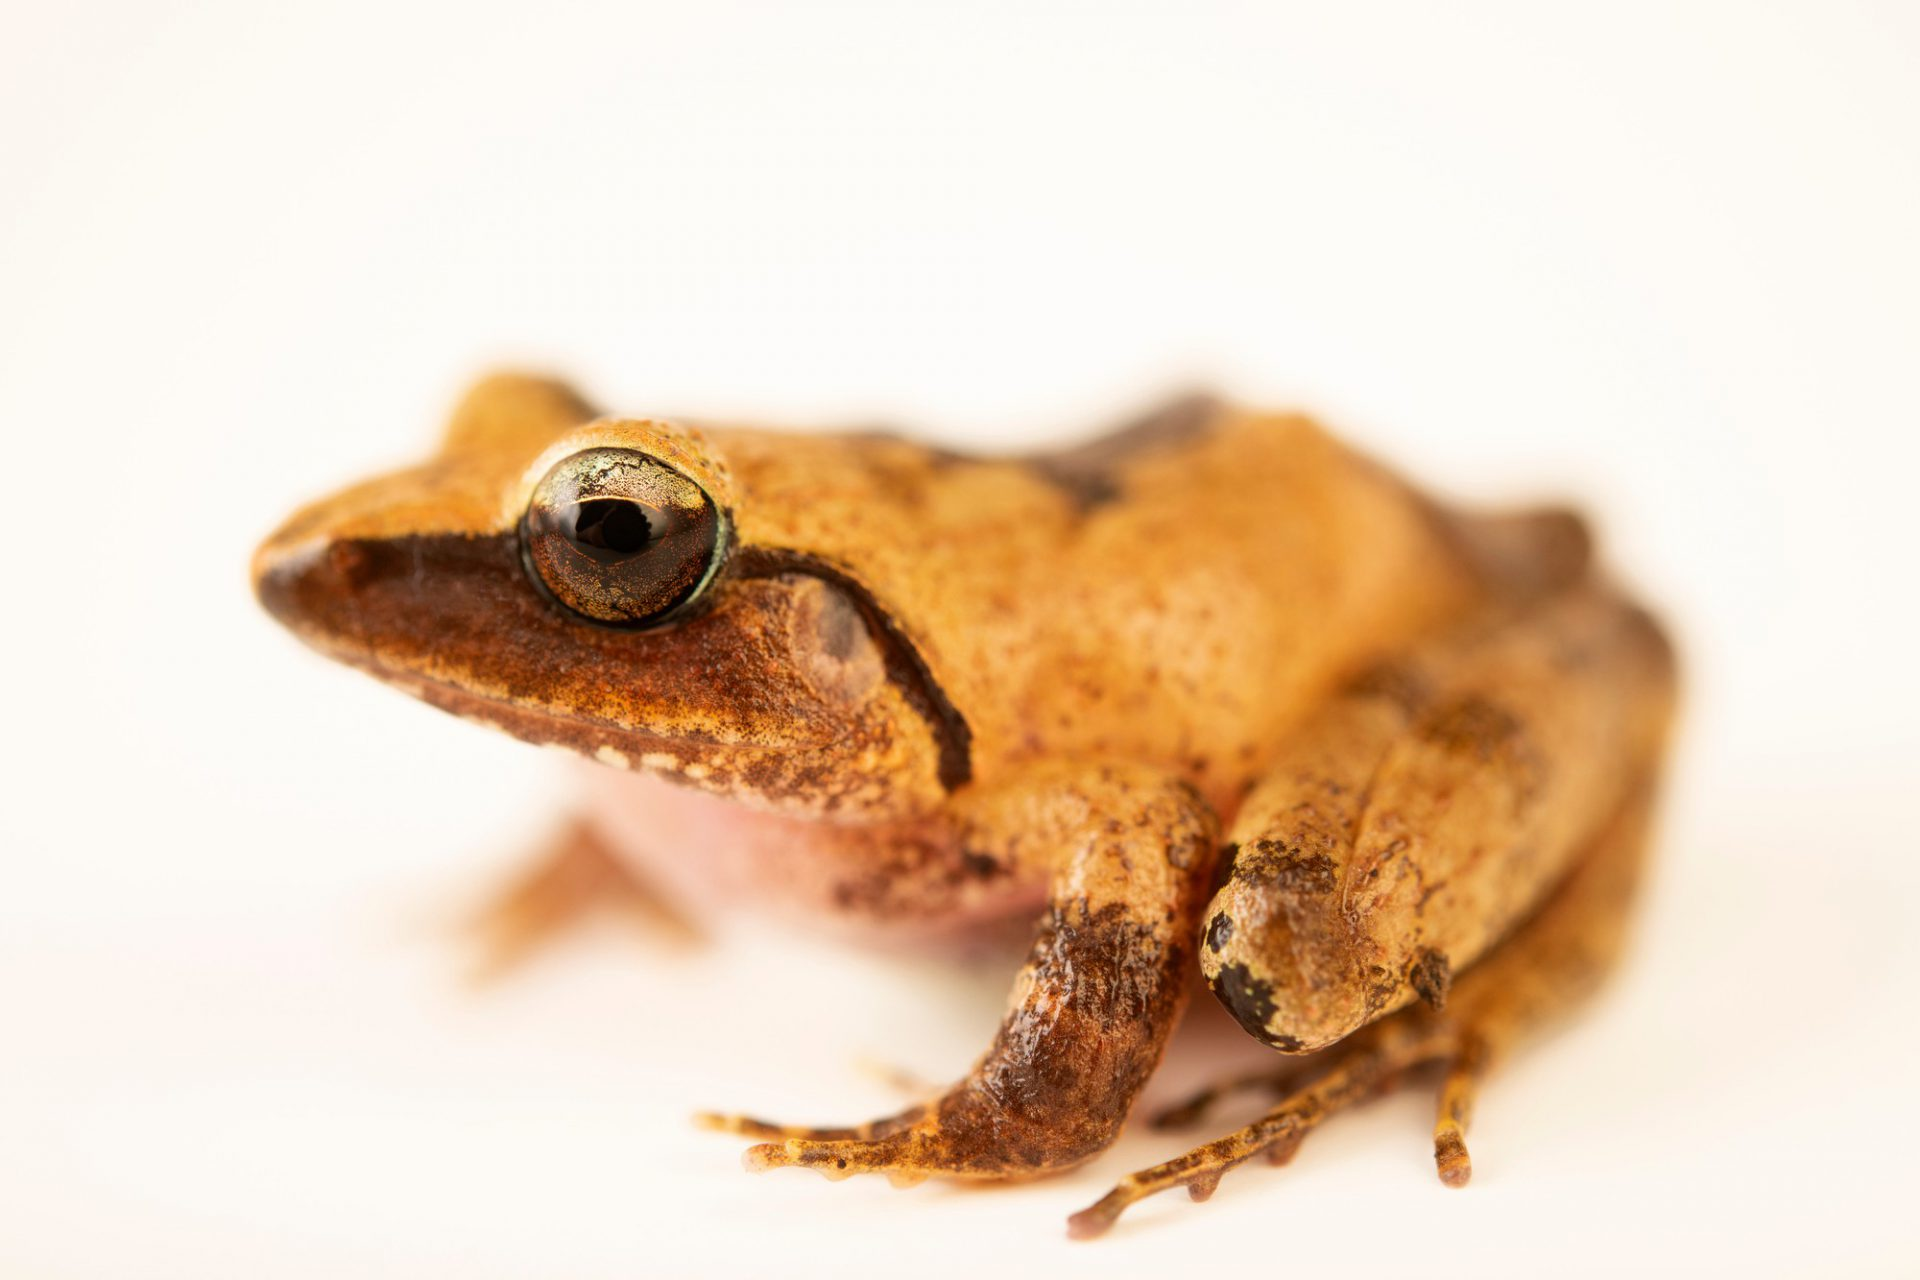 Photo: A masked wrinkled ground frog (Platymantis corrugatus) at the University of the Philippines.